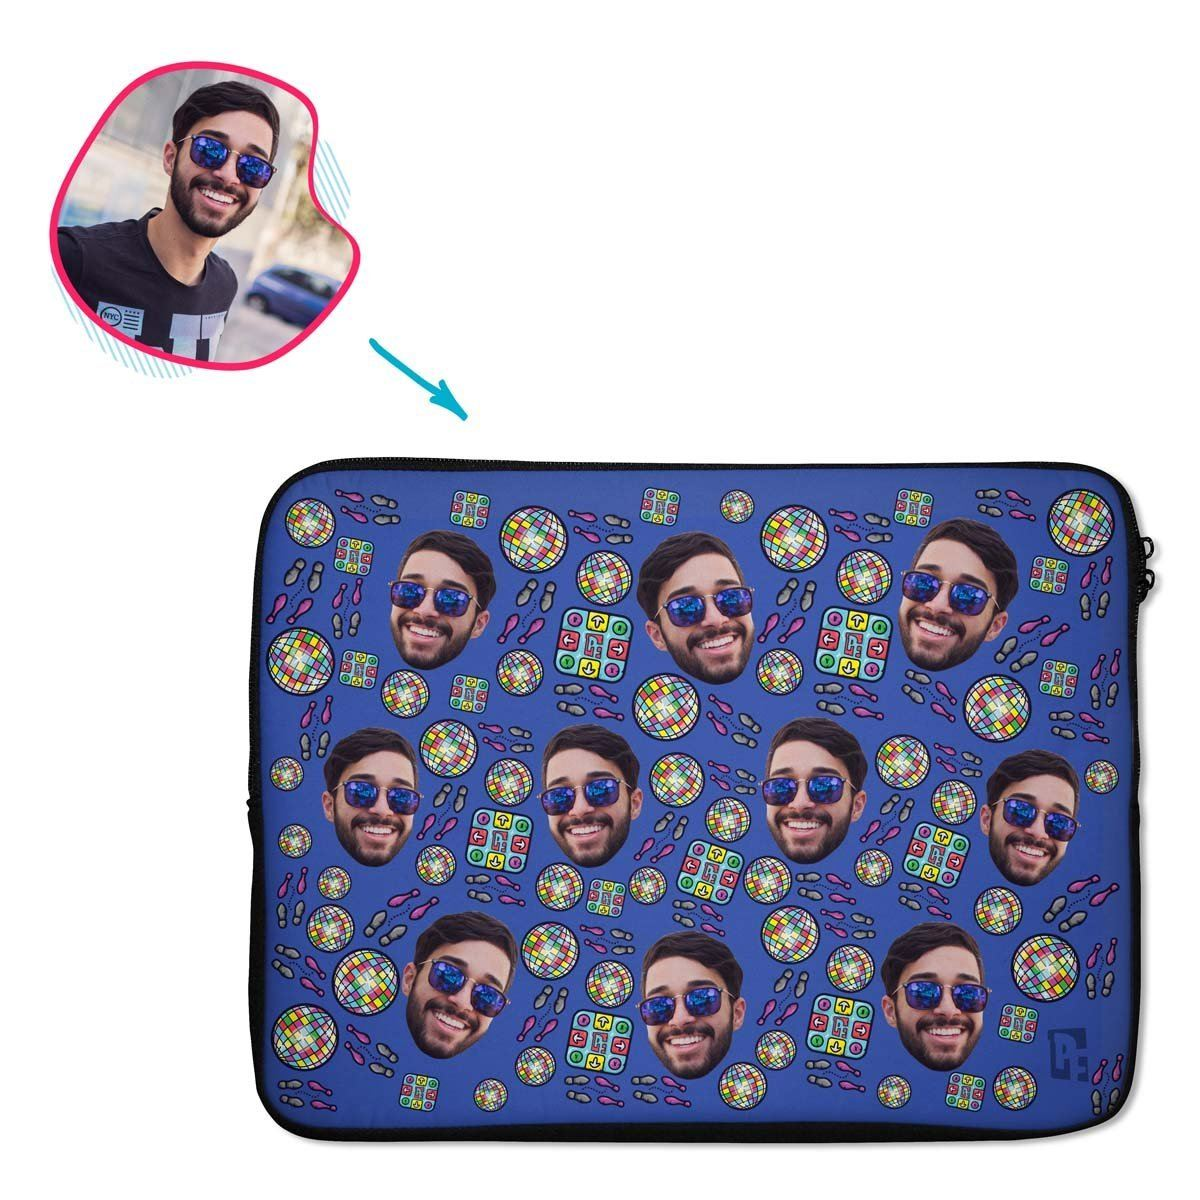 darkblue Dancing laptop sleeve personalized with photo of face printed on them